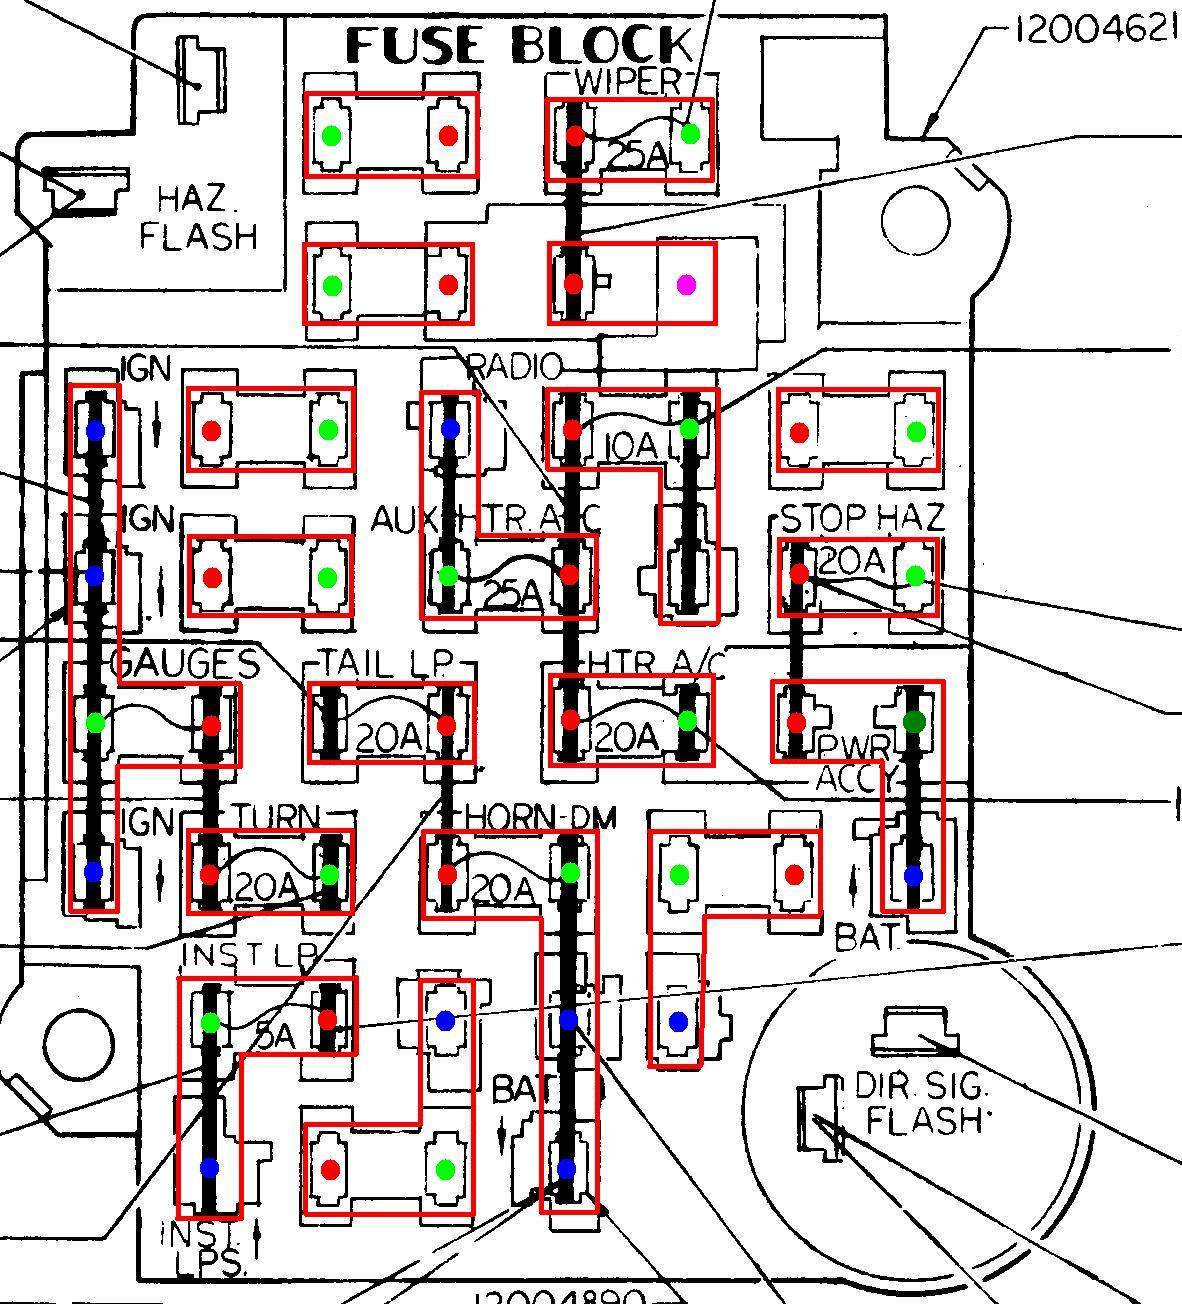 hight resolution of 2008 chevy van fuse box detailed schematics diagram rh jppastryarts com 2015 silverado fuse box diagram